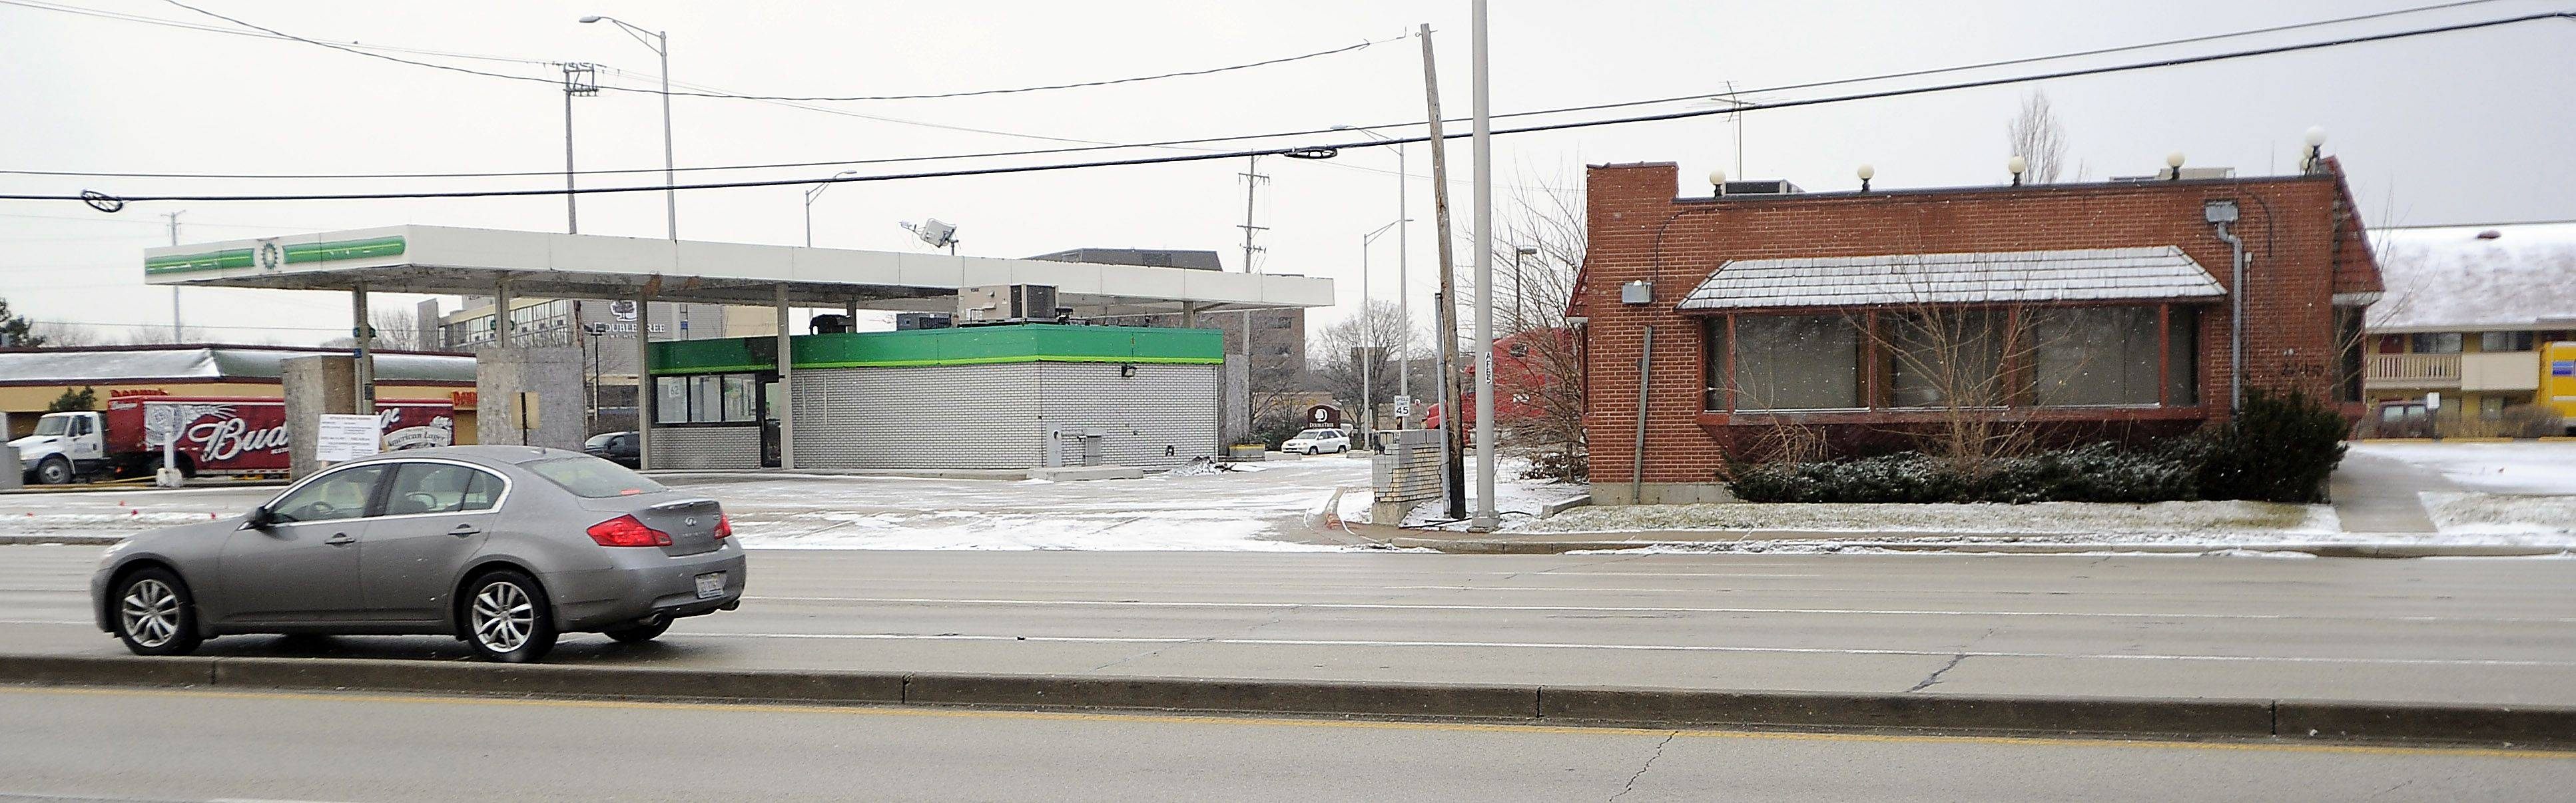 New plans were approved Tuesday for the site with a vacant BP gas station and Higgley's restaurant at the corner of Arlington Heights and Algonquin roads.